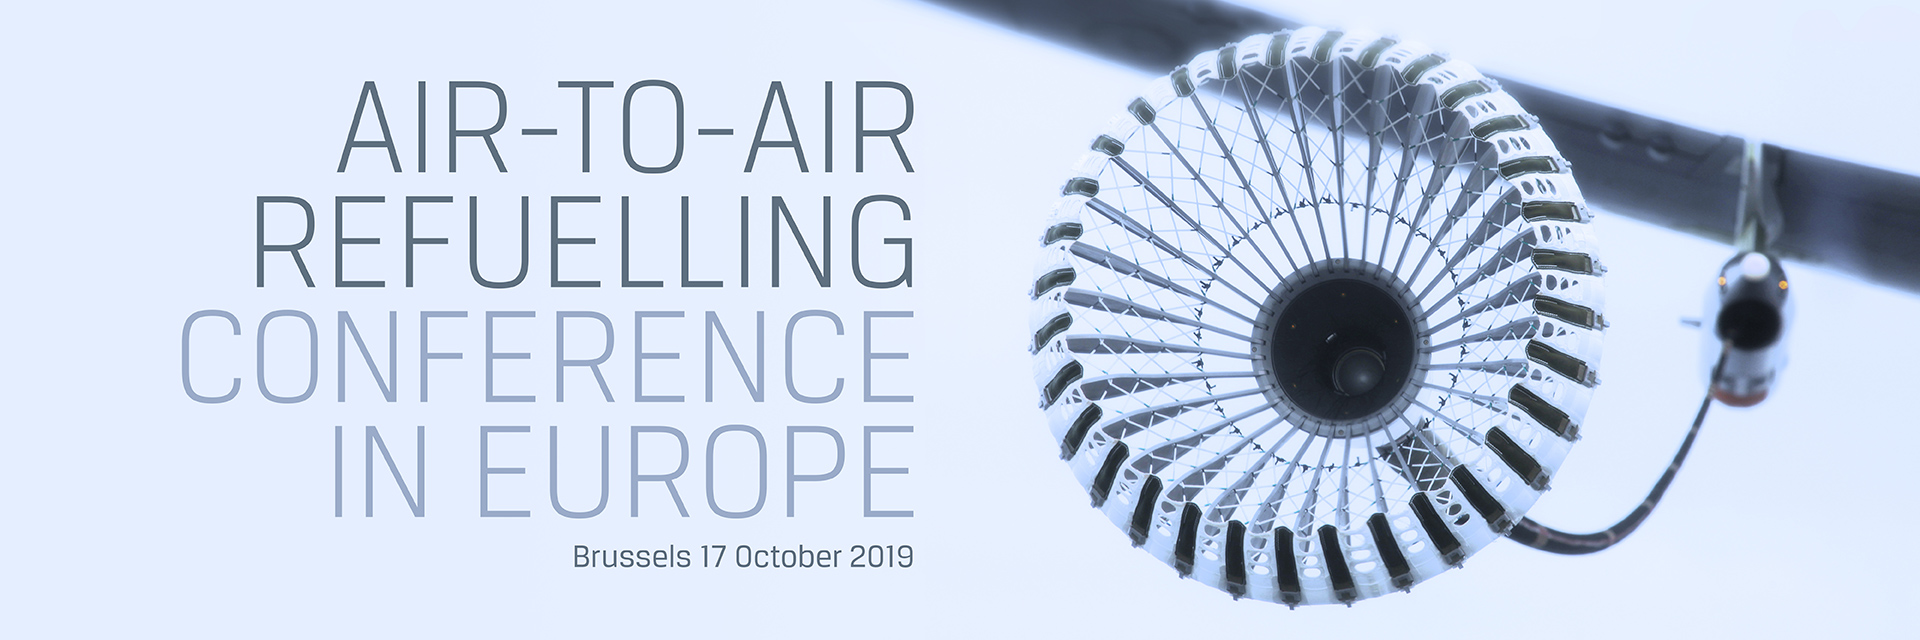 NATO and EDA co-organise Air-to-Air Refuelling conference